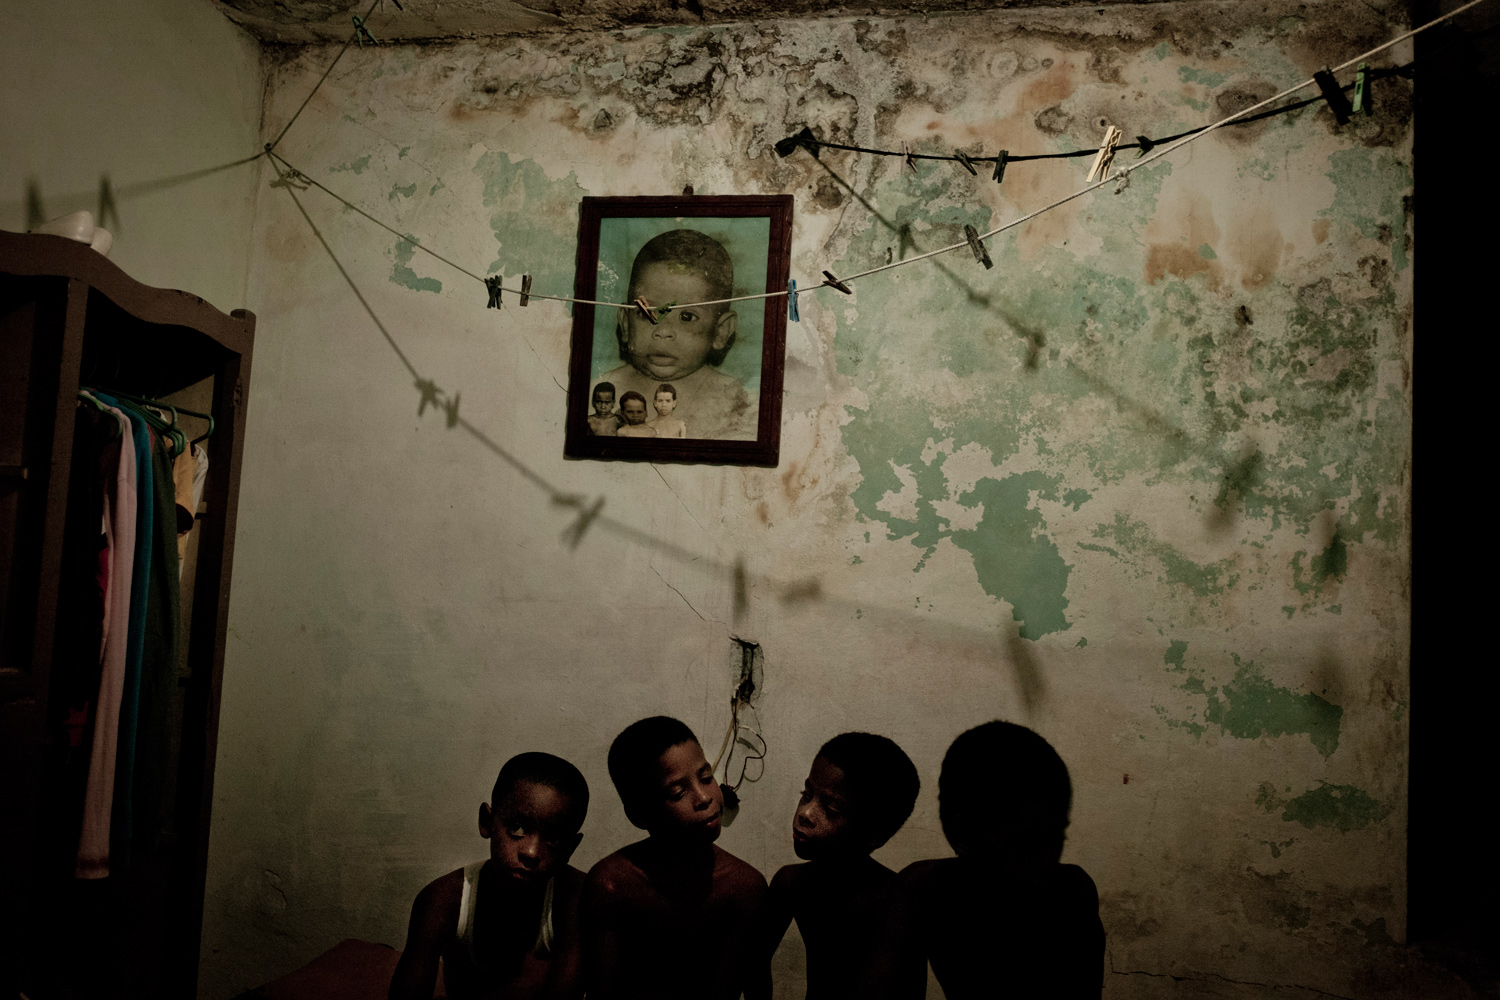 July 26, 2011. Four brothers from the Morales family in their room in centro Havana, Cuba.